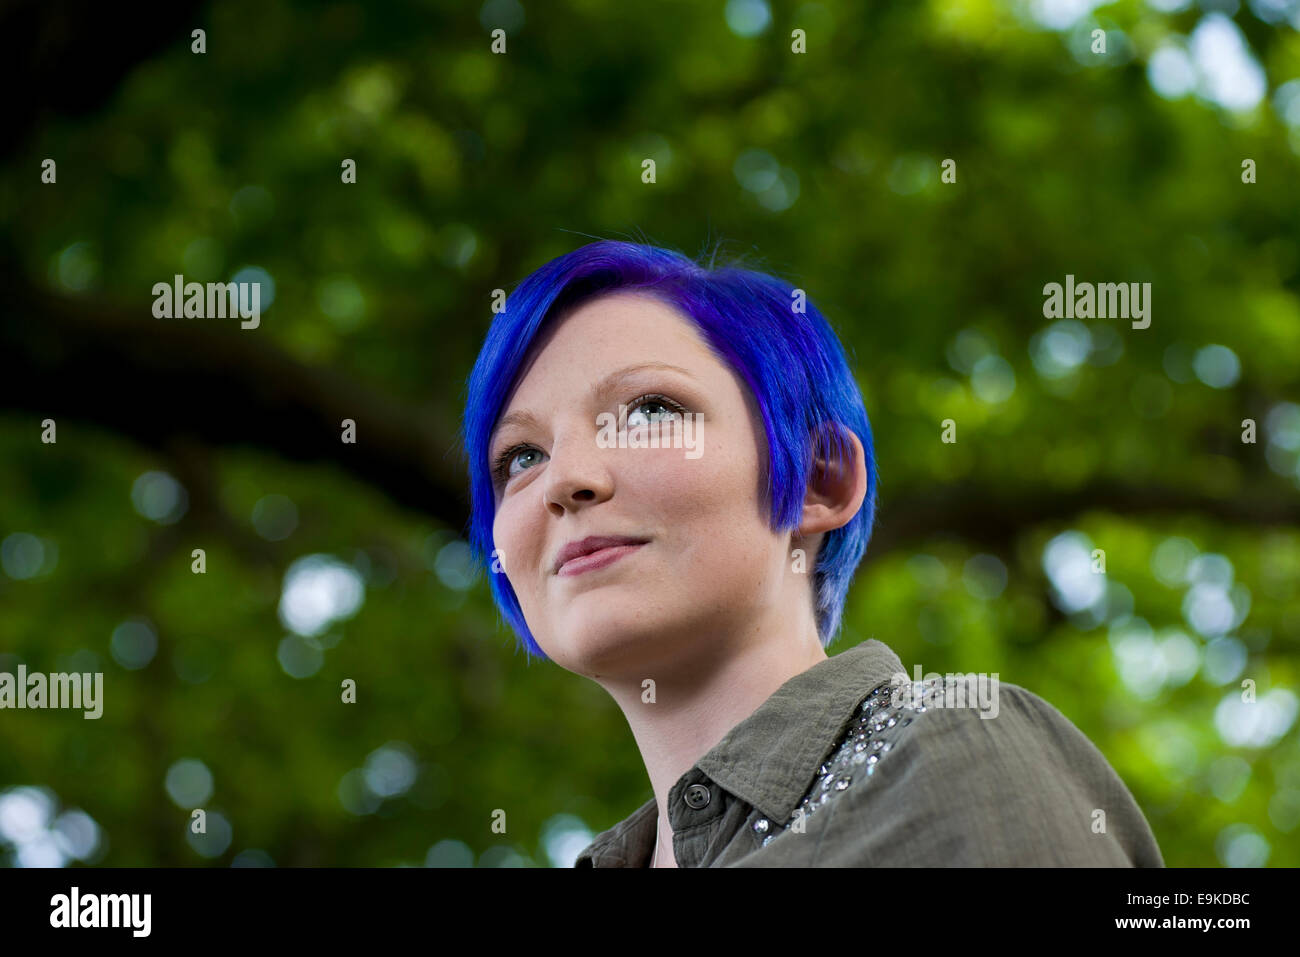 Author Lucy Saxon appears at the Edinburgh International Book Festival. - Stock Image